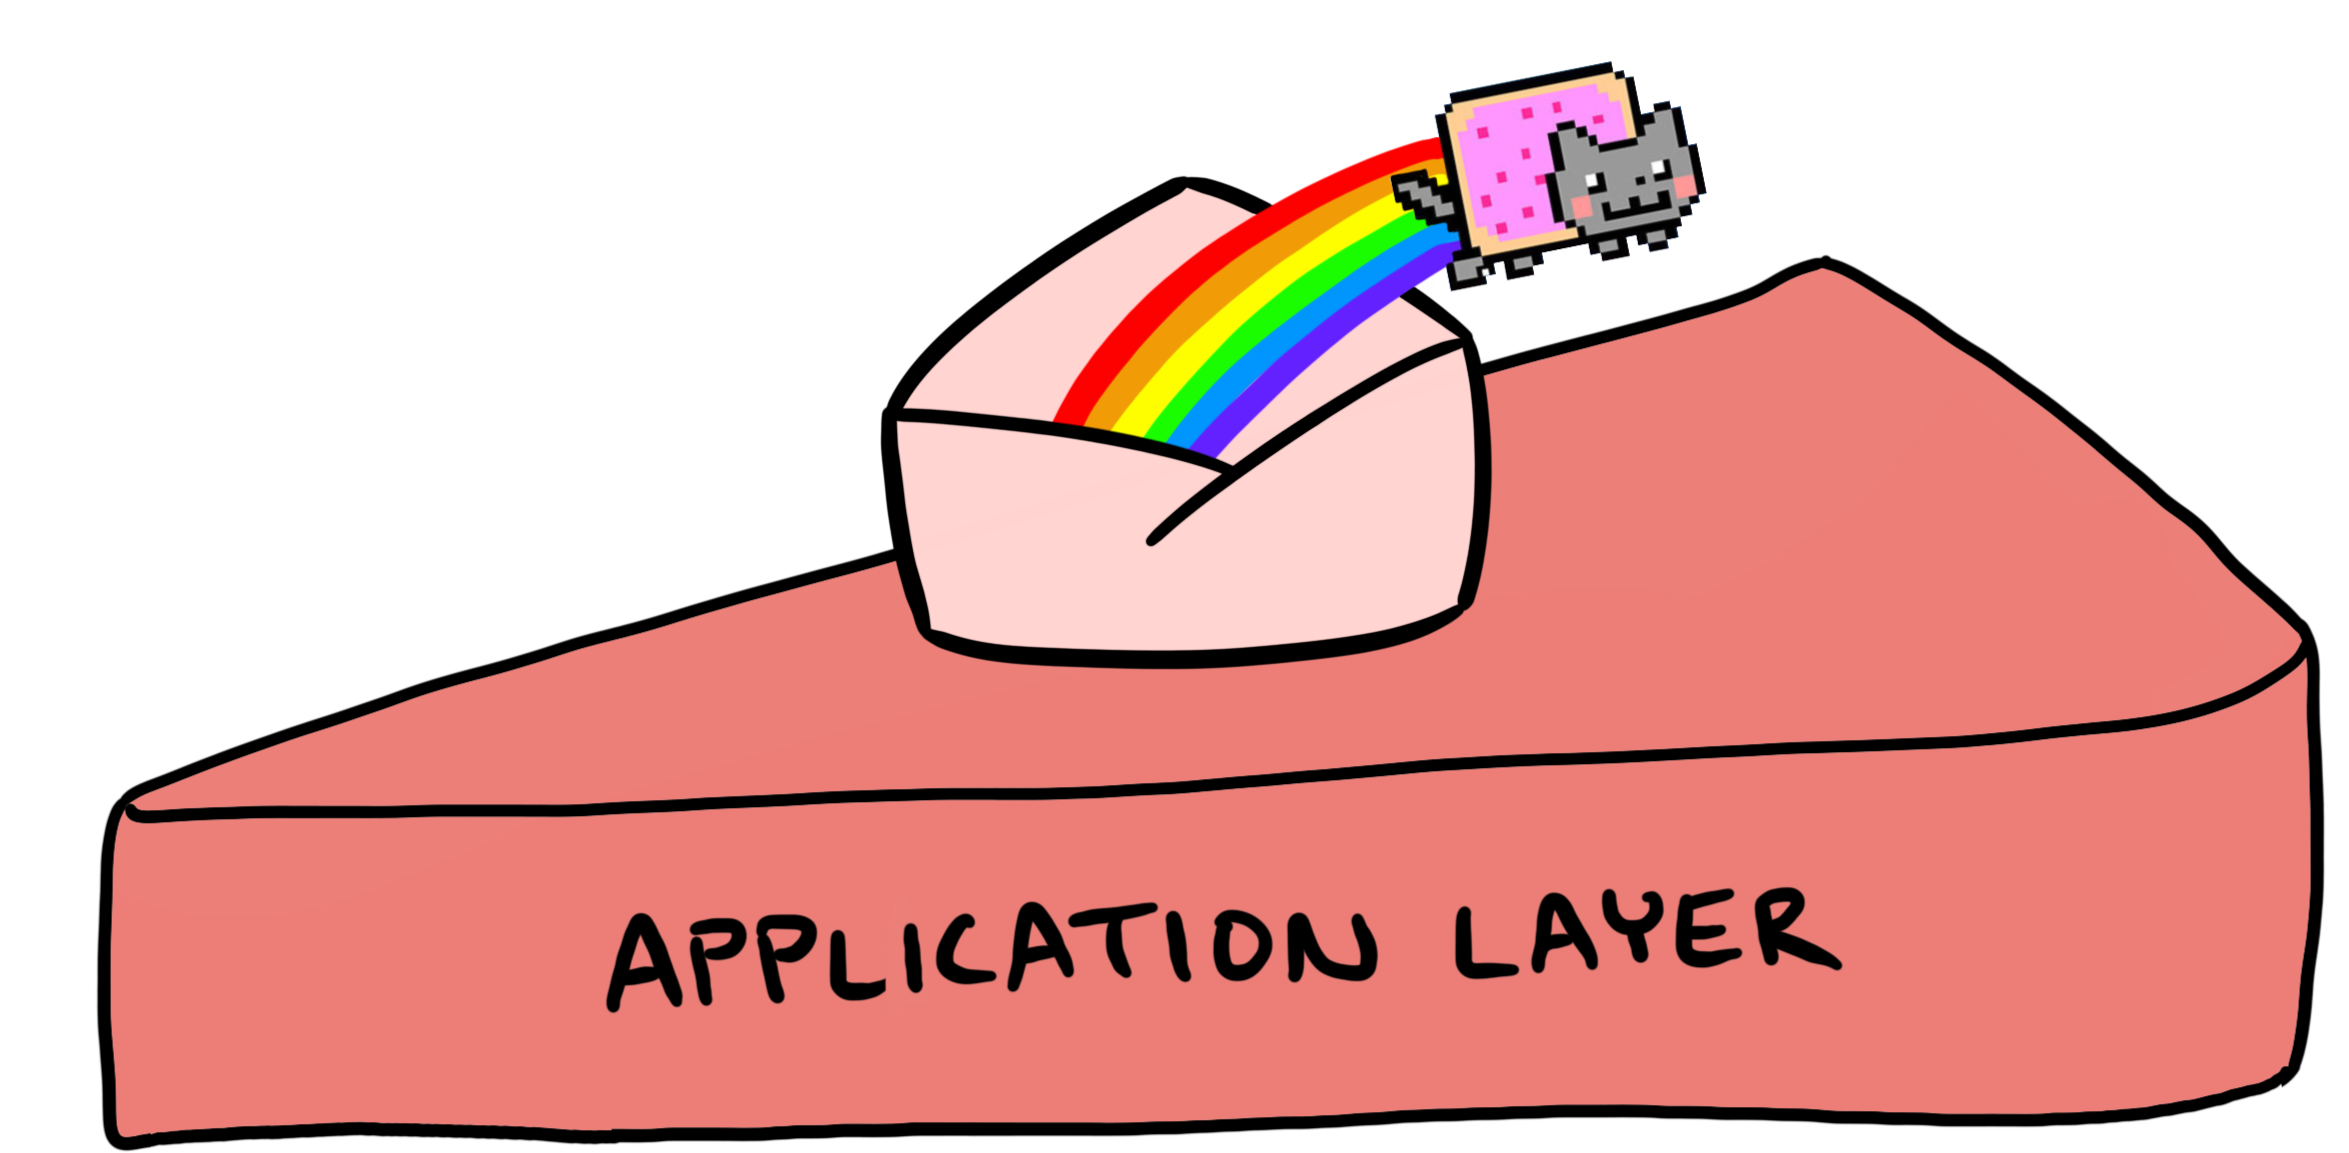 Application cake layer cartoon